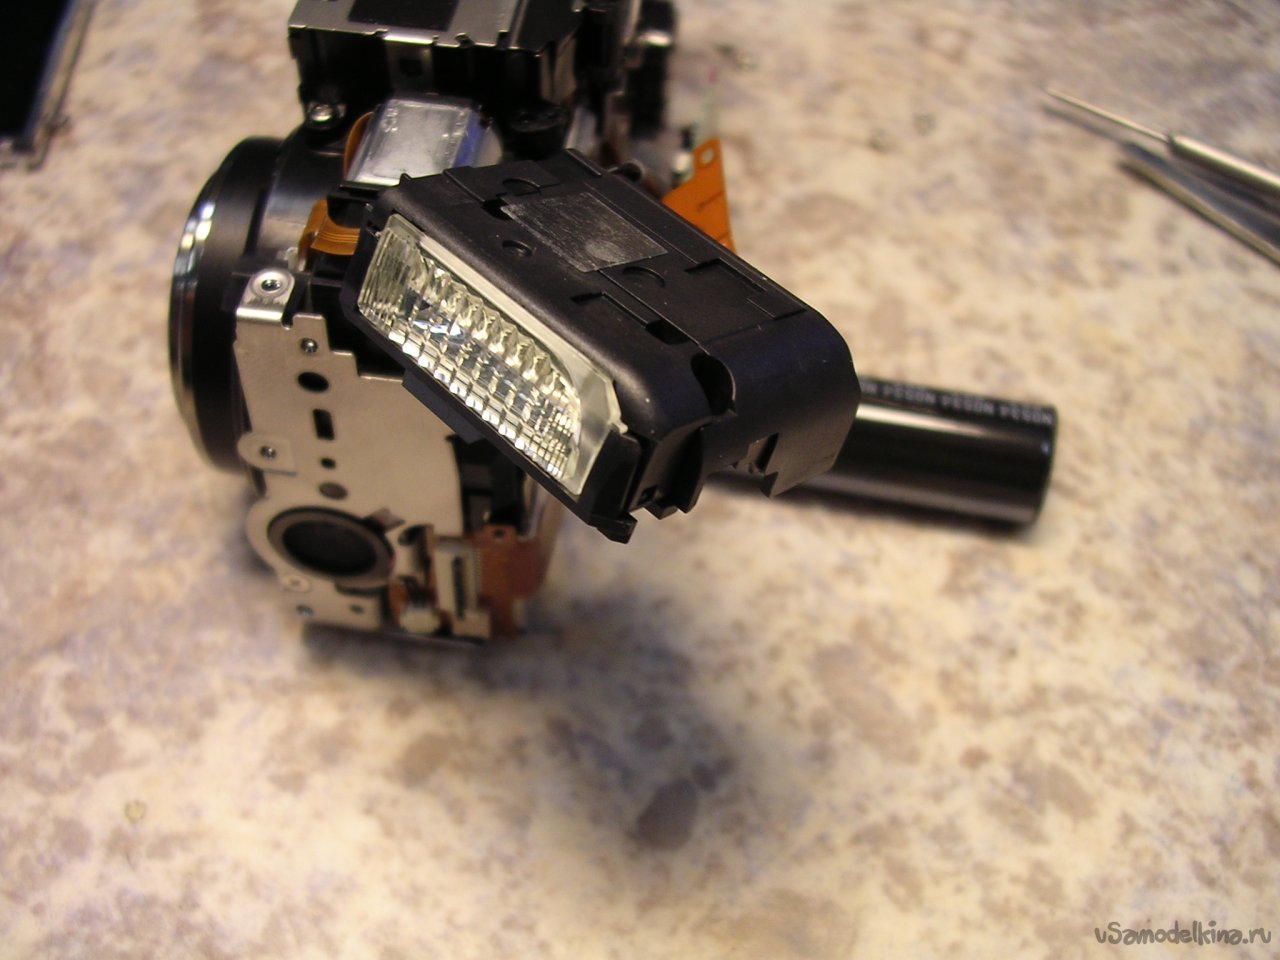 Repairing a folded lens for Canon PowerShot S80